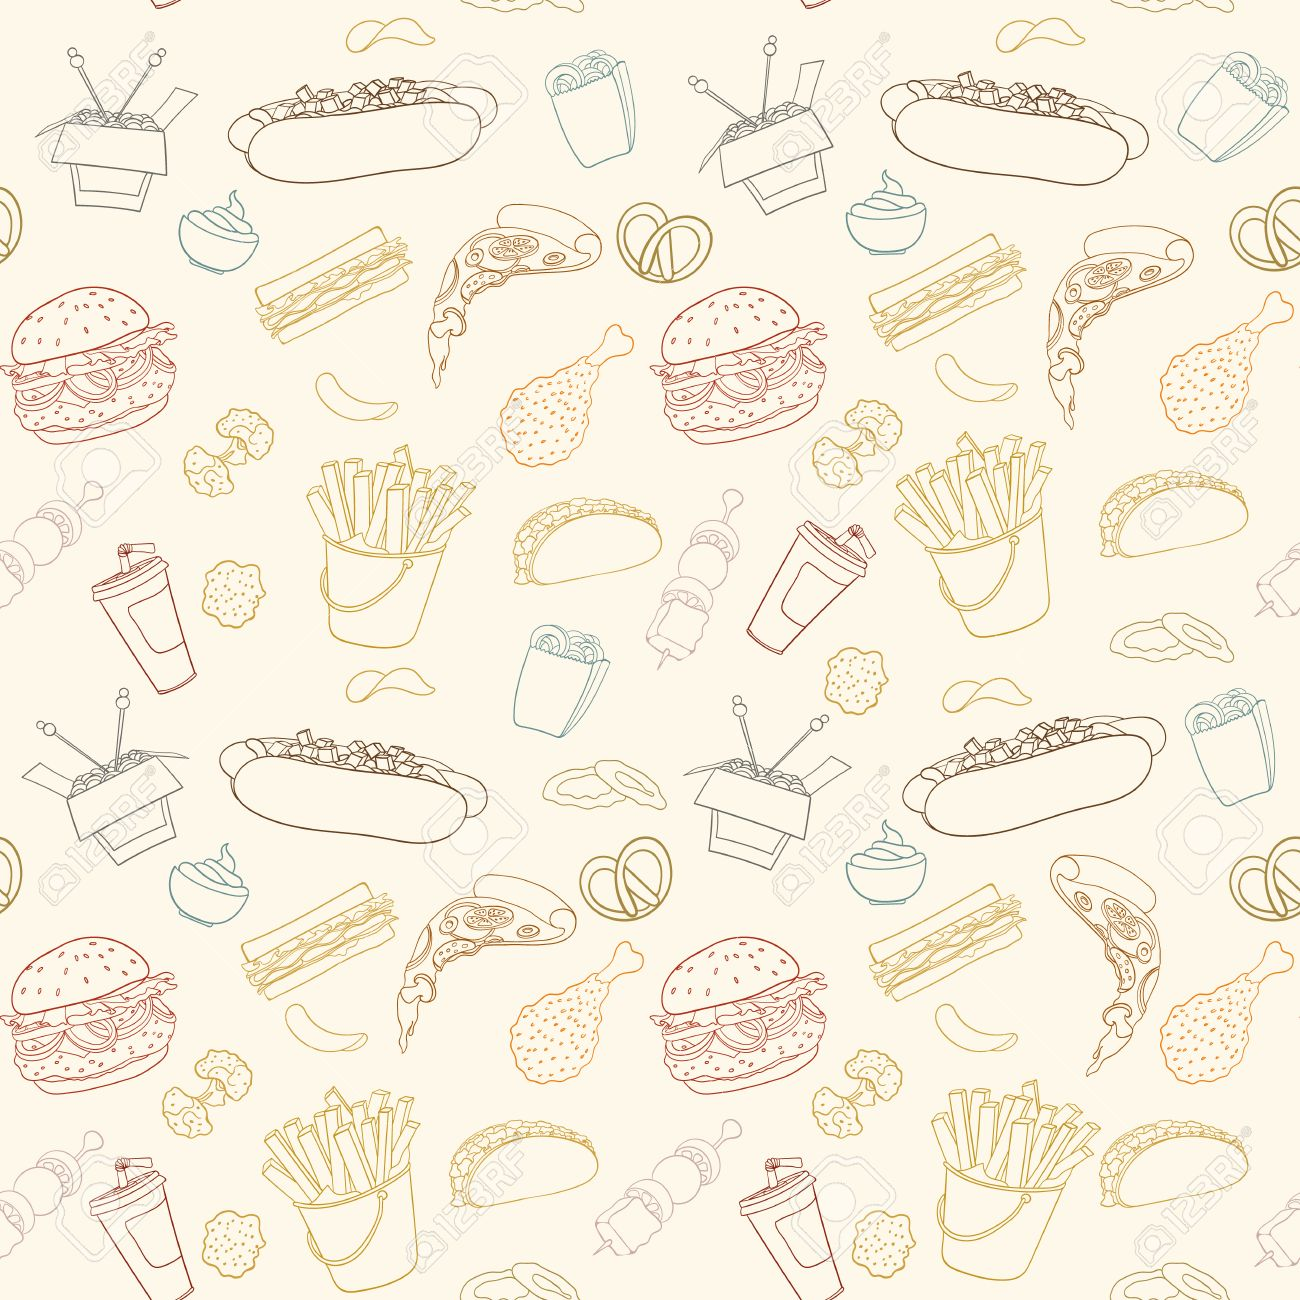 hand drawn vector seamless fast food pattern sketch doodle foodhand drawn vector seamless fast food pattern sketch doodle food elements can be used